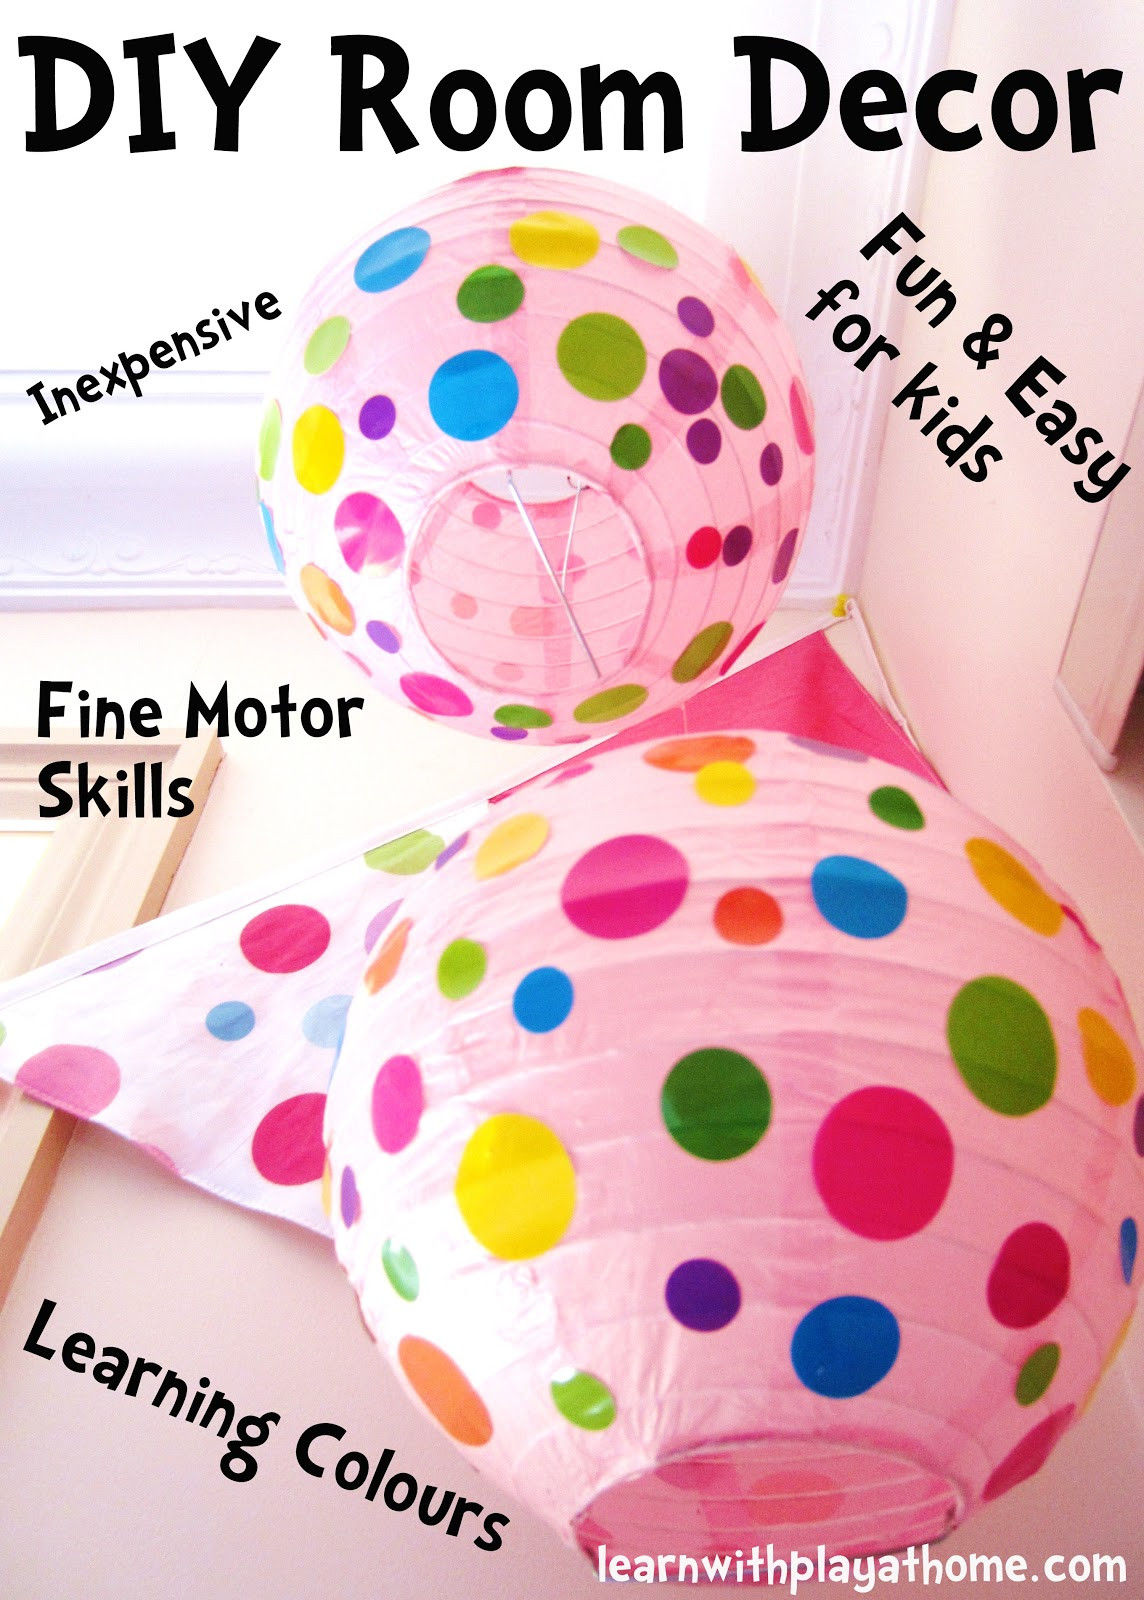 Best ideas about DIY Room Decorations For Kids . Save or Pin Learn with Play at Home DIY Kids Room Decor Spotty Lanterns Now.